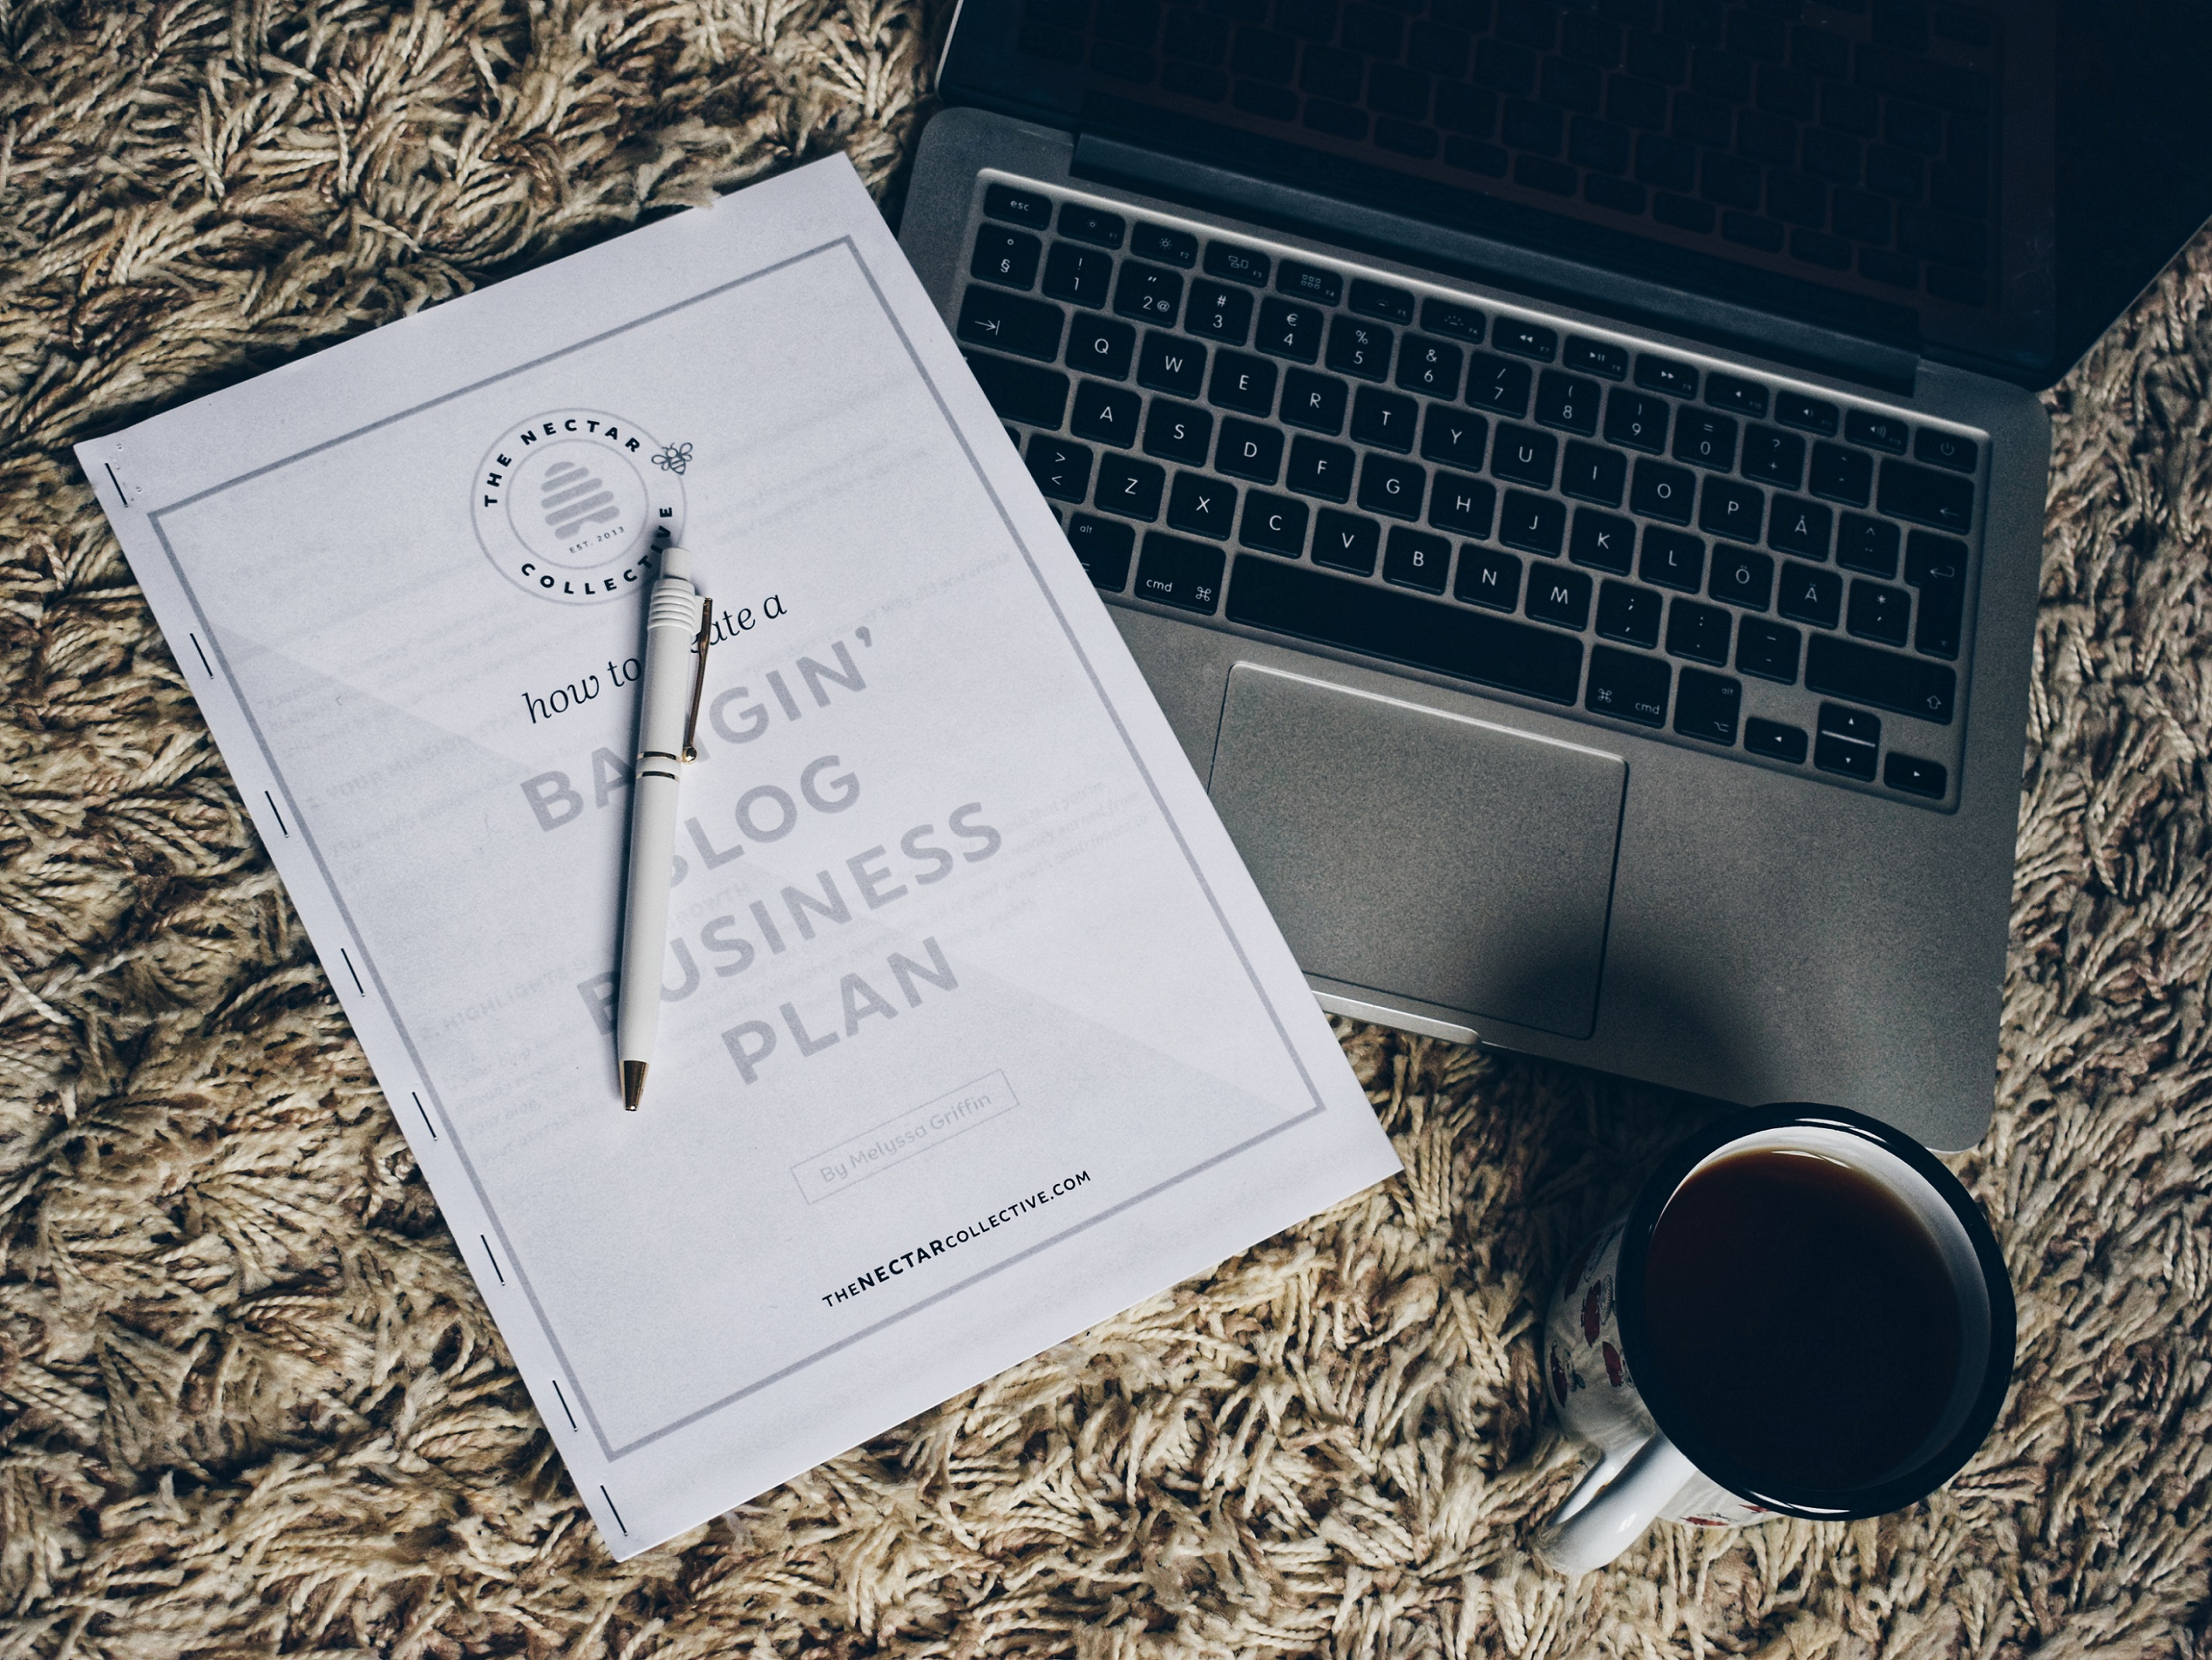 Outlandish blog Changes Dreams Future Photography Challenge Business Plan